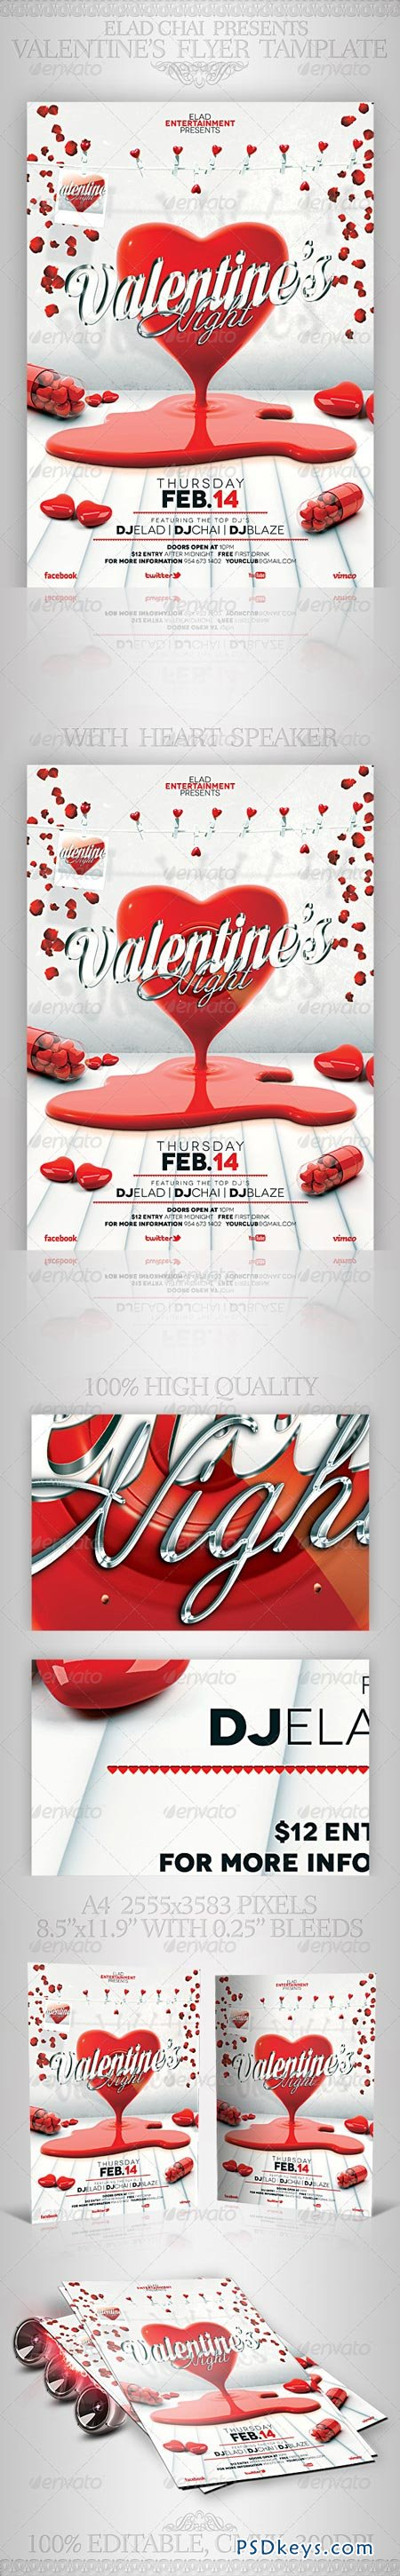 Valentine's Day A4 Flyer Poster Template 3816573